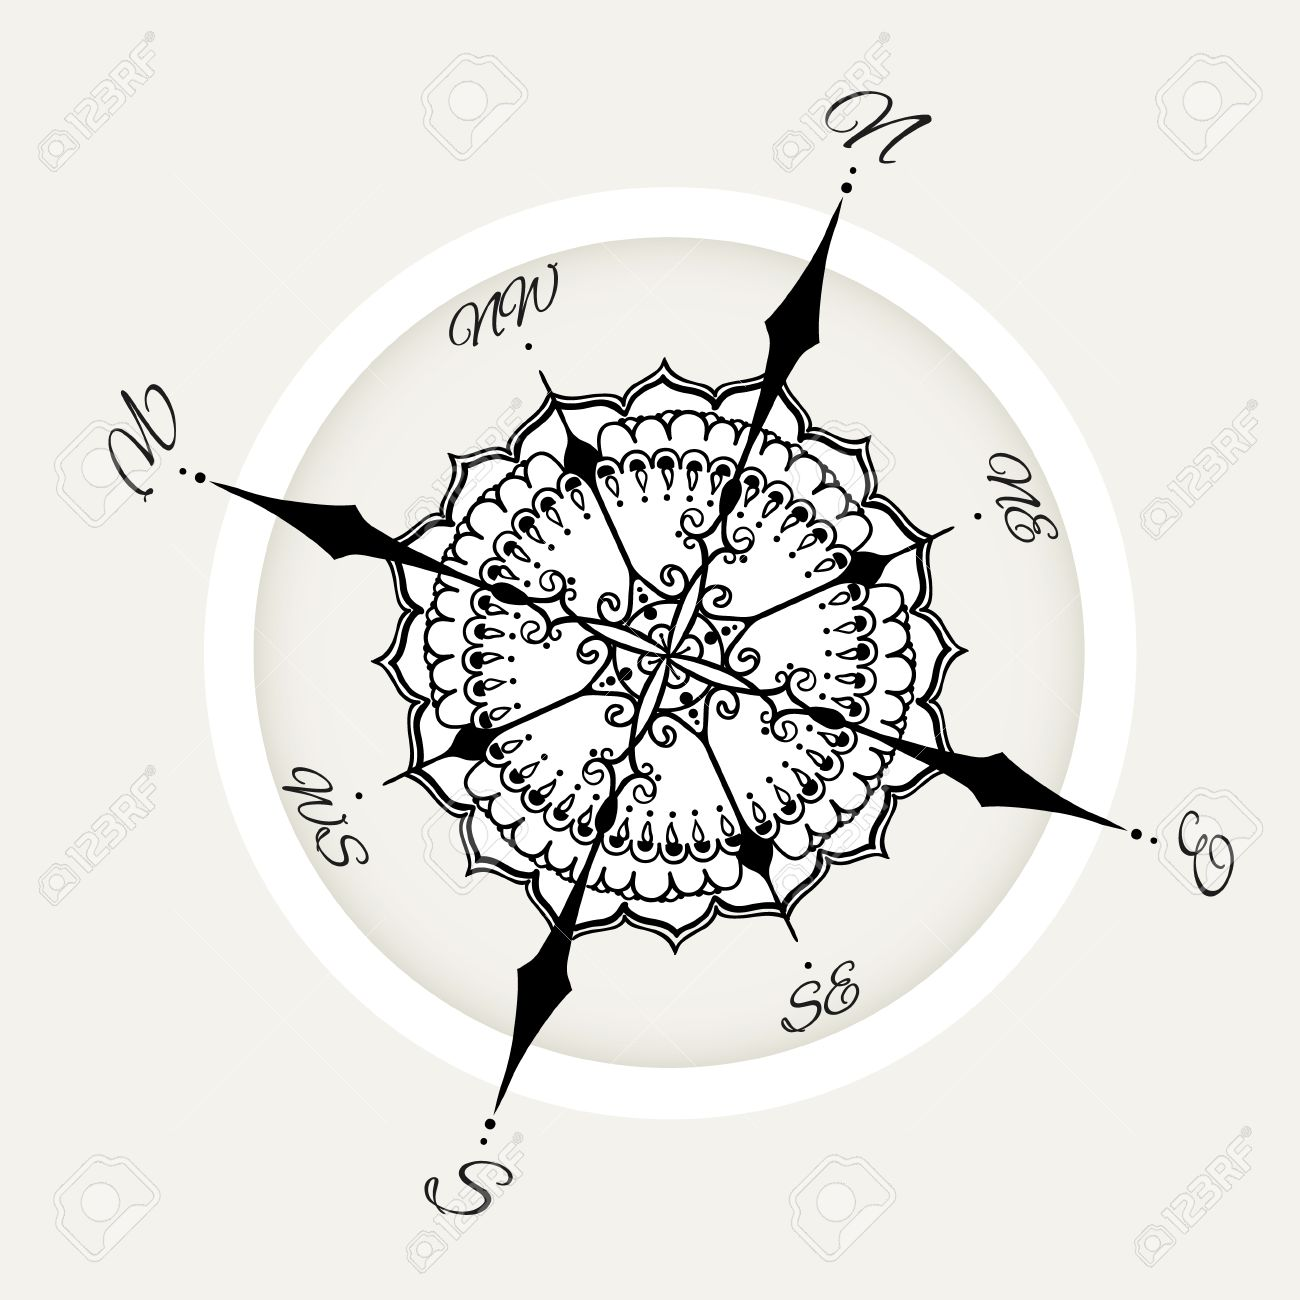 Graphic Wind Rose Compass Drawn With Floral Elements Nautical